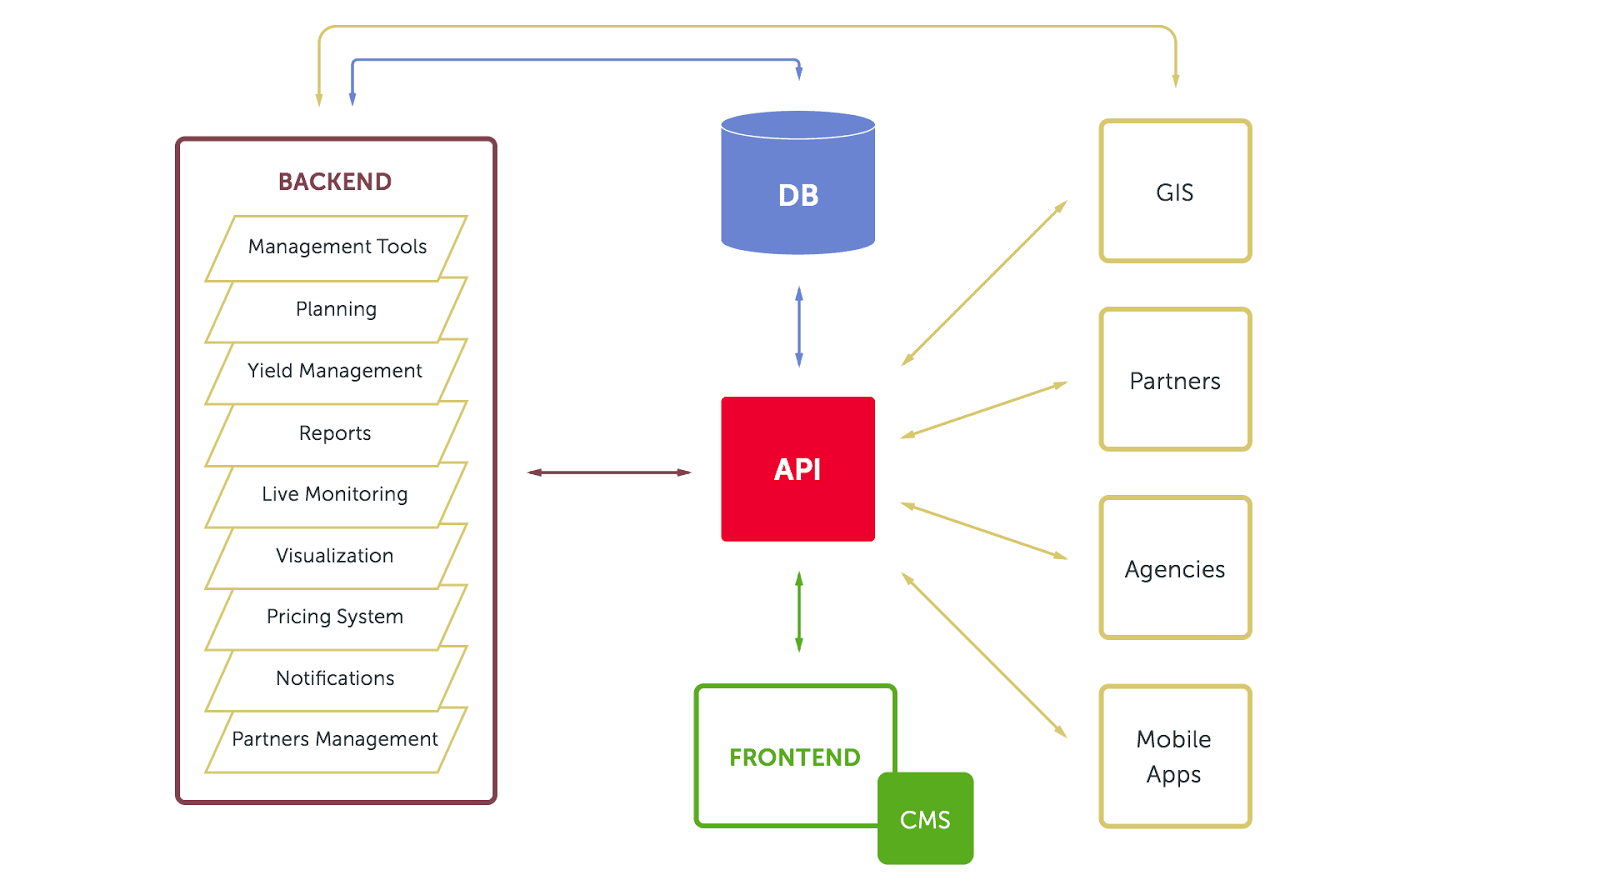 System architecture for MeinFernbus